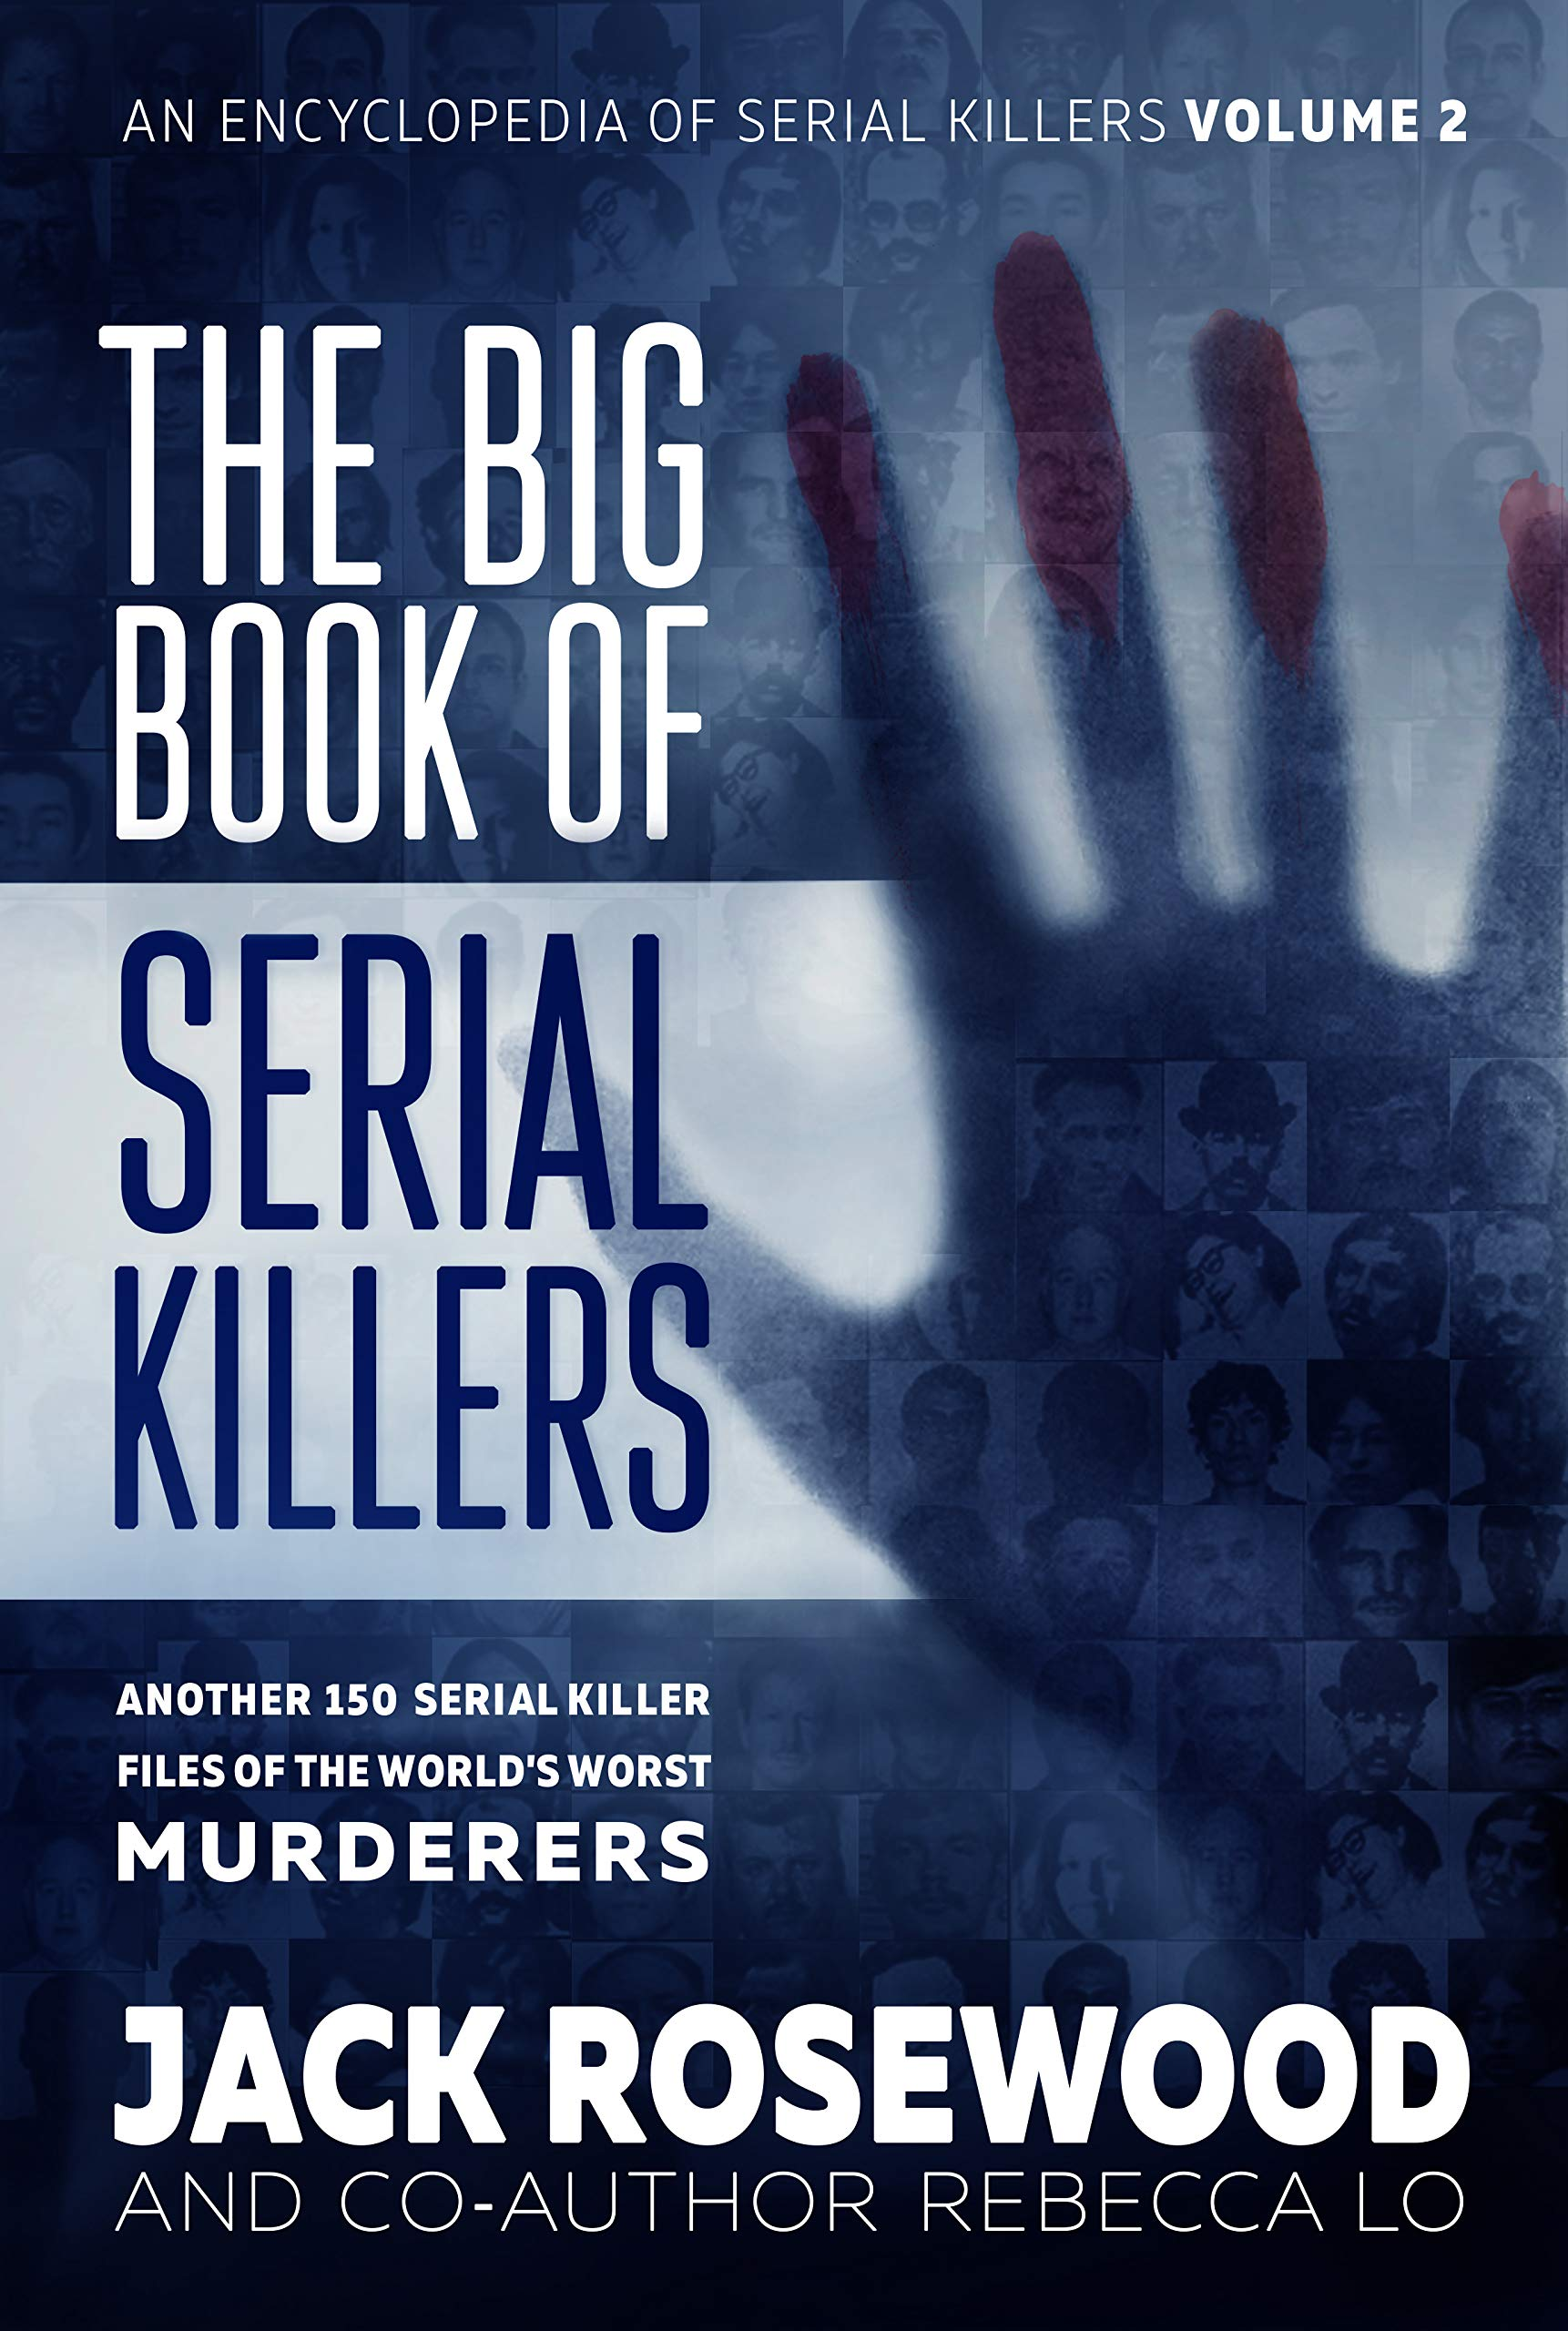 The Big Book Of Serial Killers Volume 2  Another 150 Serial Killer Files Of The World's Worst Murderers  An Encyclopedia Of Serial Killers   English Edition